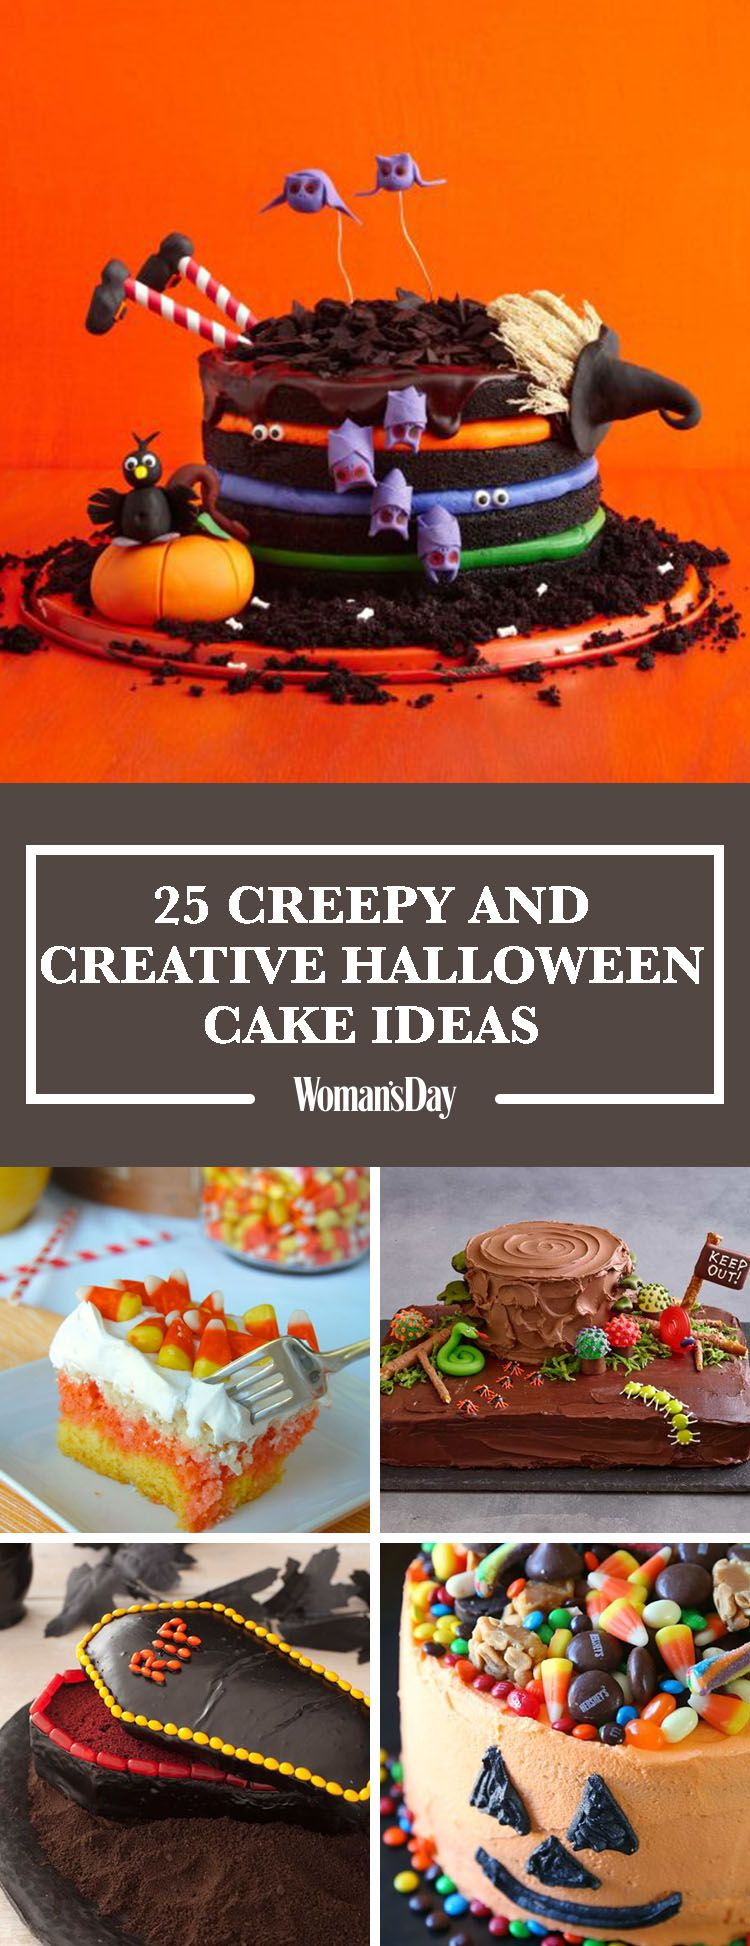 30 Easy Halloween Cakes - Recipes & Ideas for Halloween Cake ...